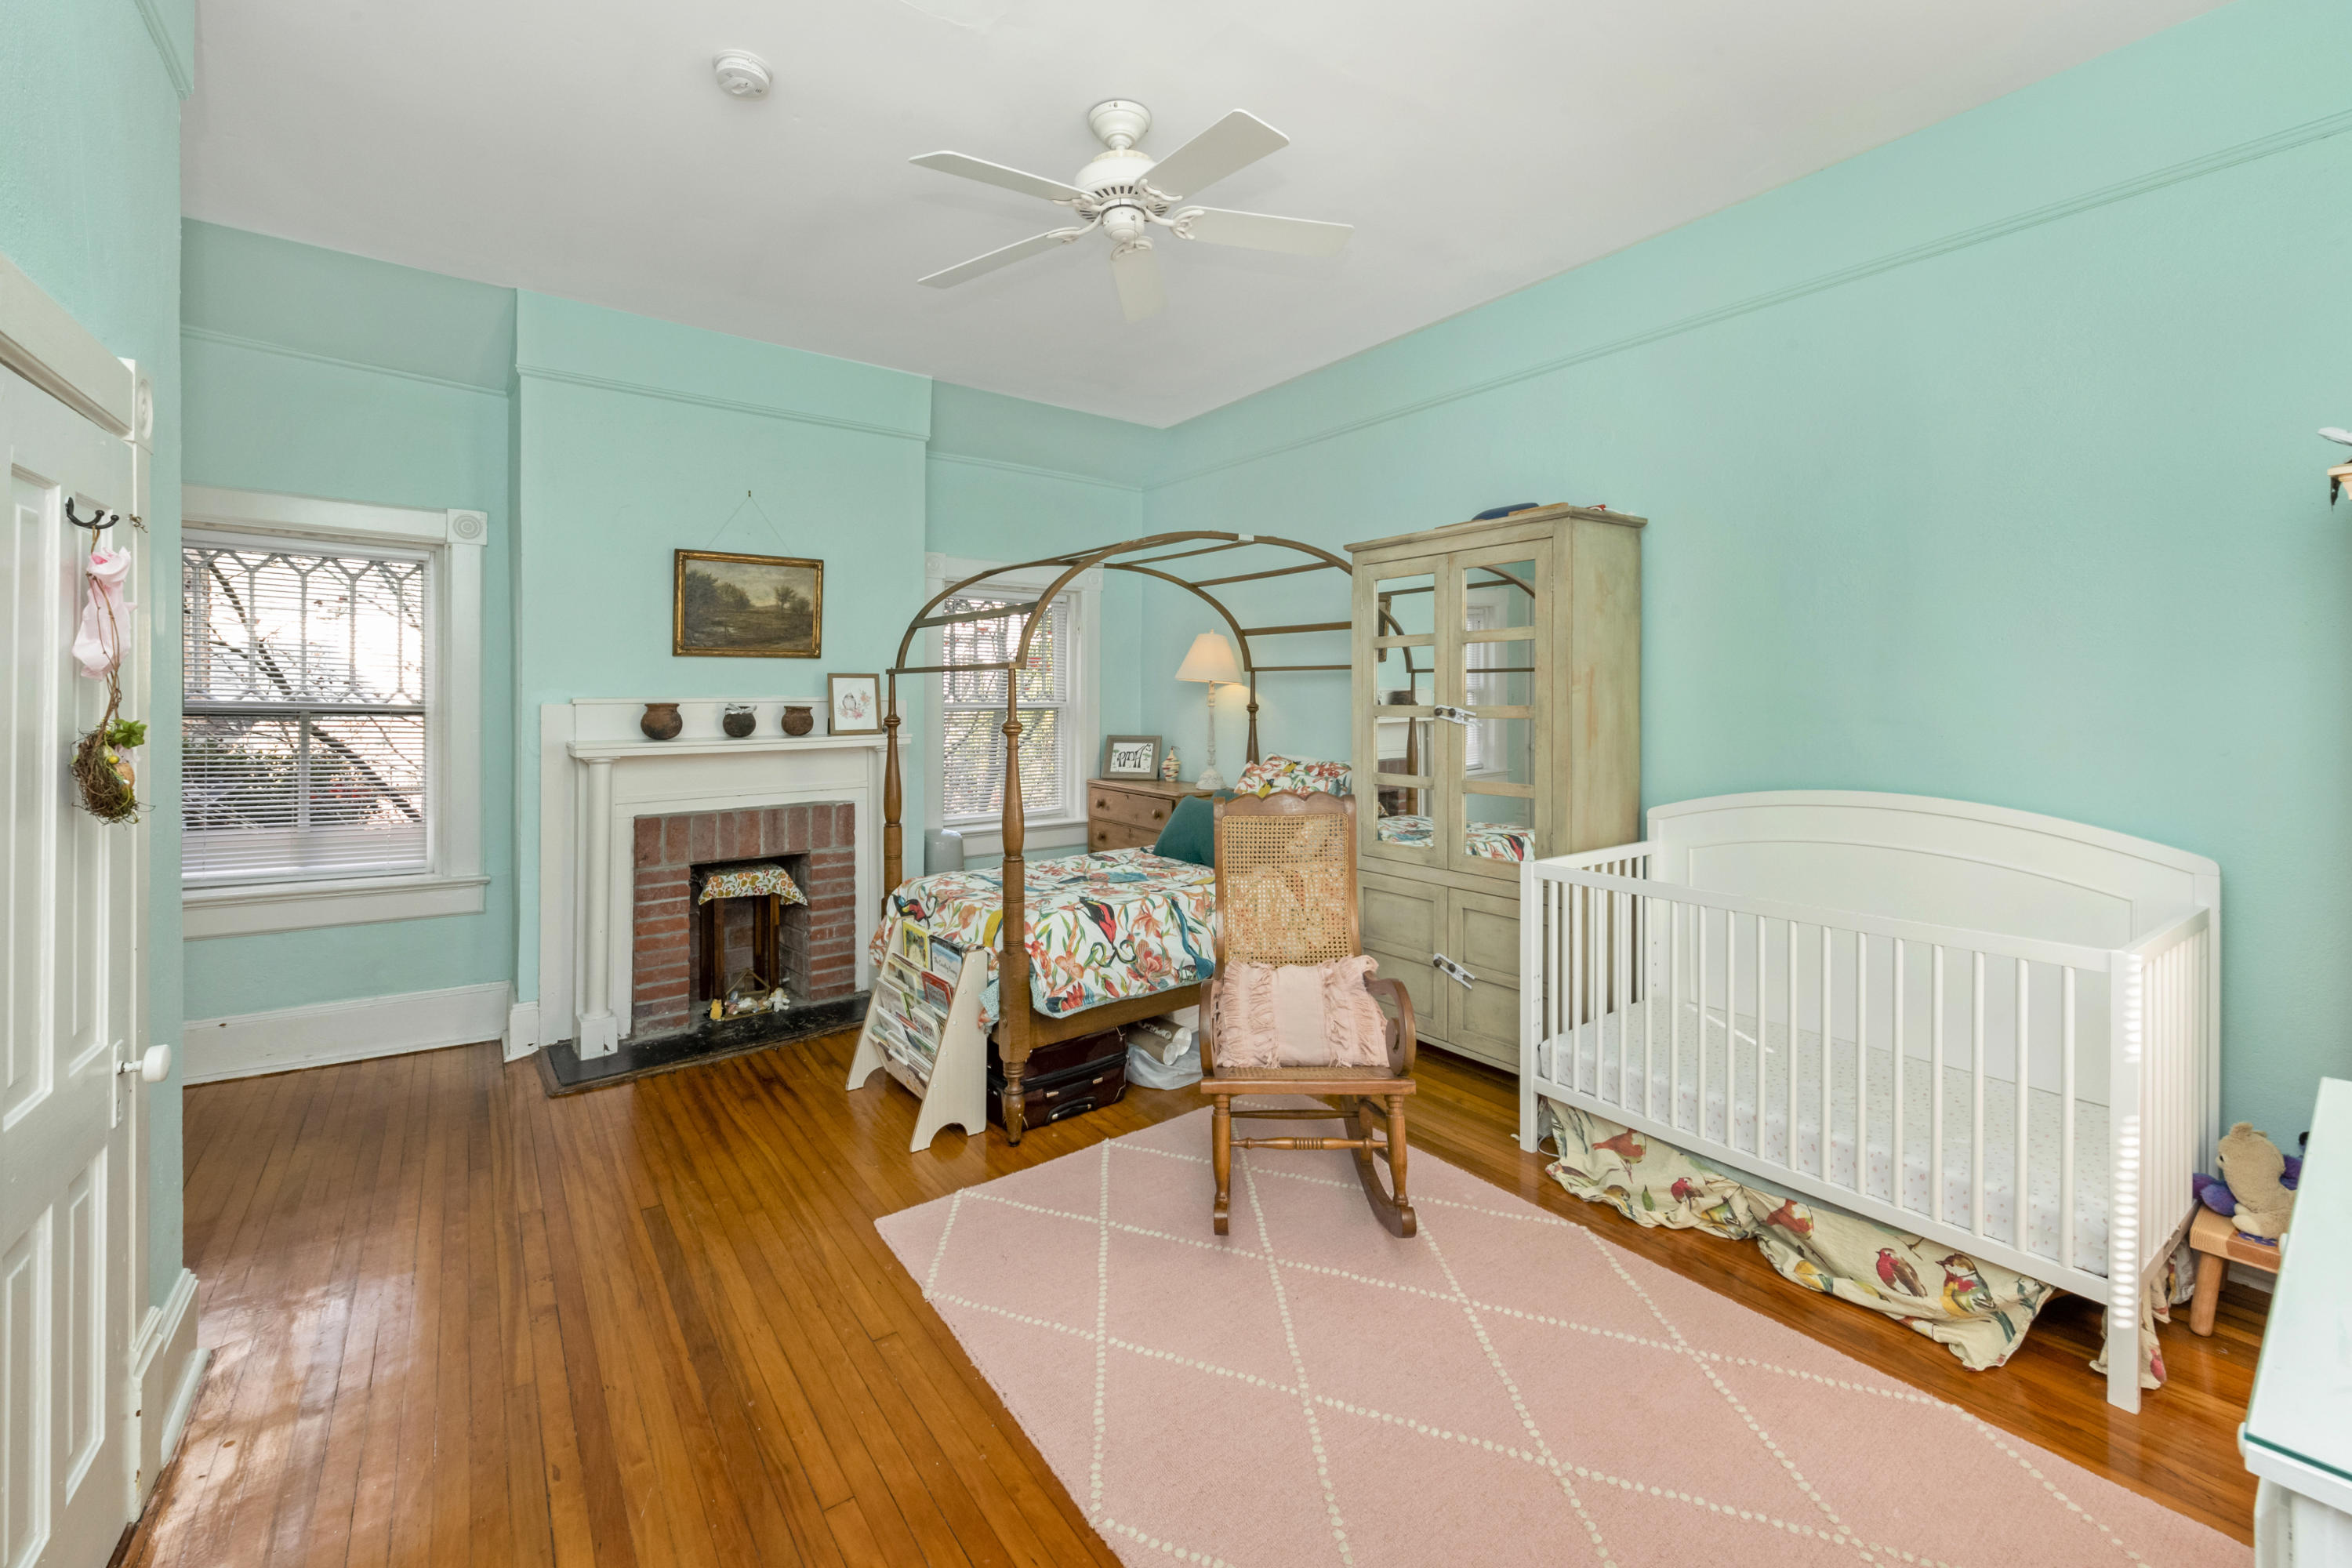 South of Broad Homes For Sale - 4 Weims, Charleston, SC - 7